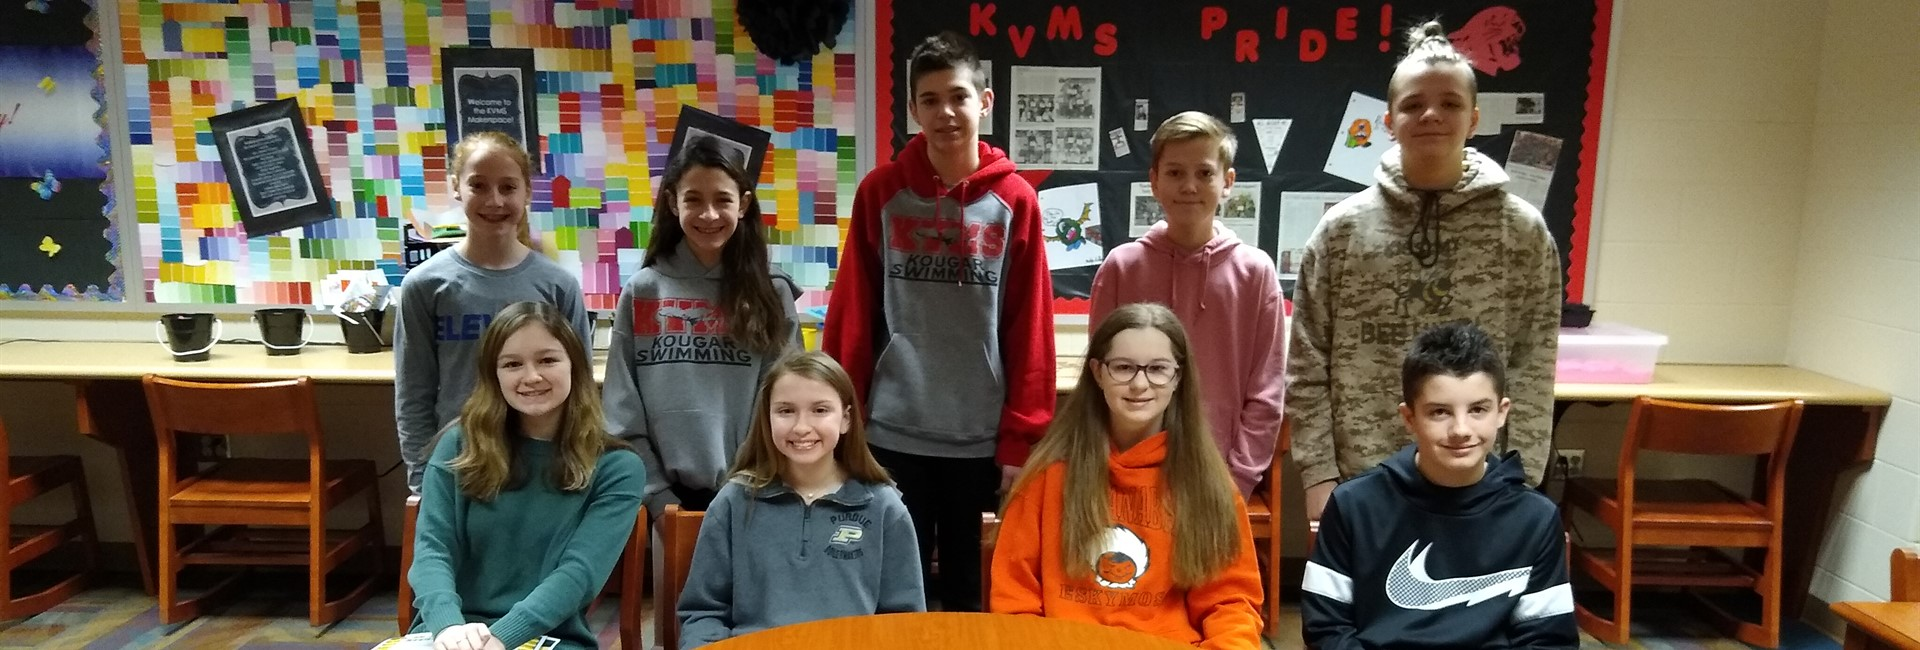 KVMS February 2020 Students of the Month